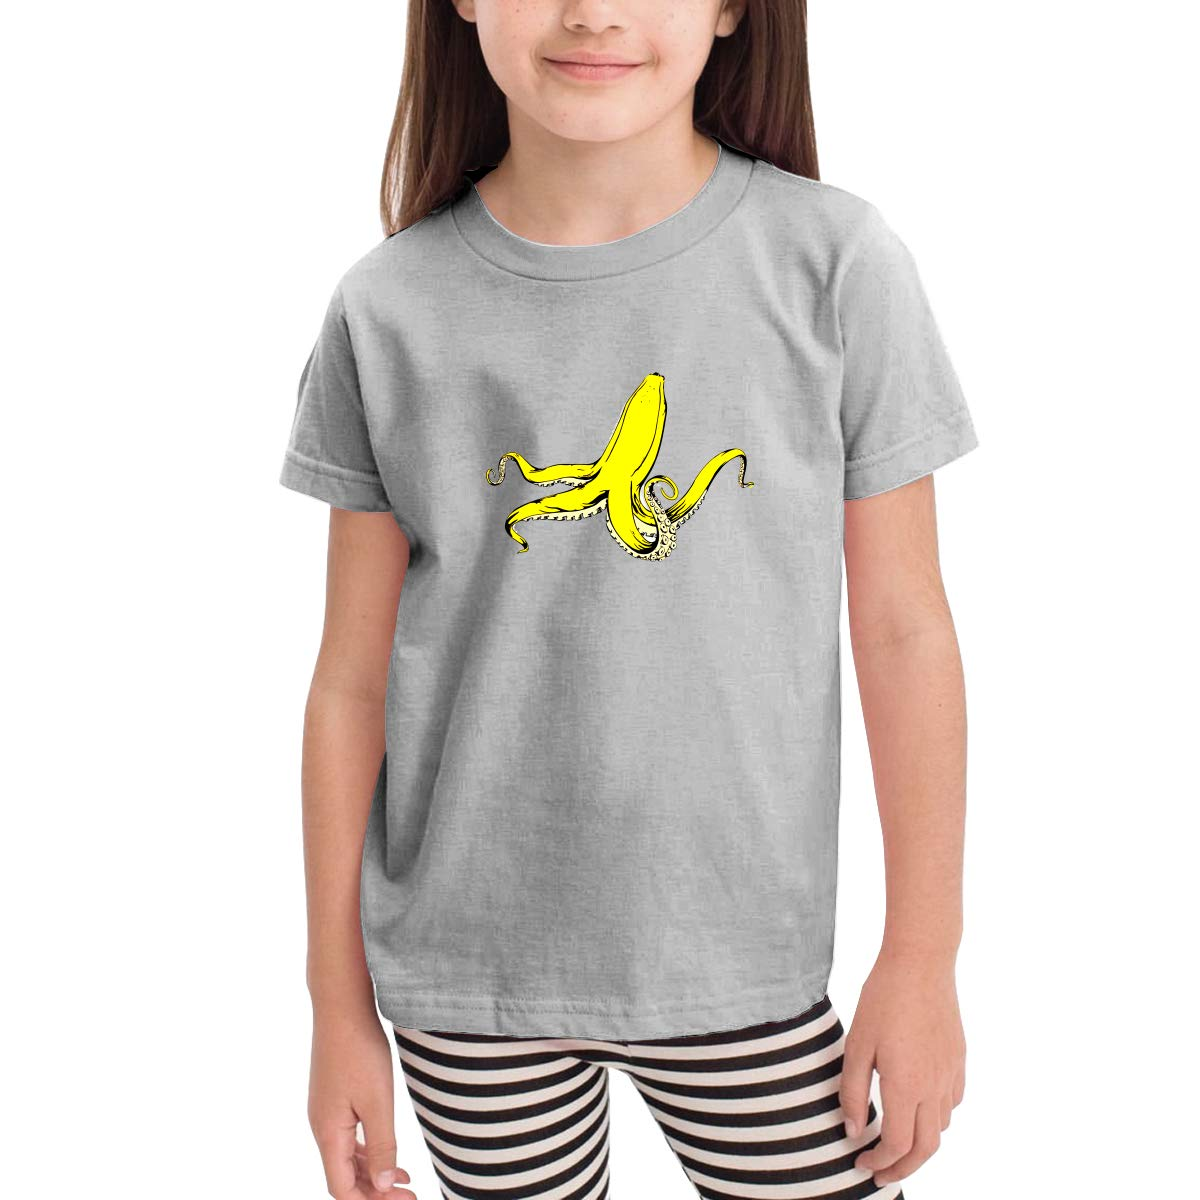 Cami Banana Squid Best Gift Idea Toddler Infant Kids T-Shirt